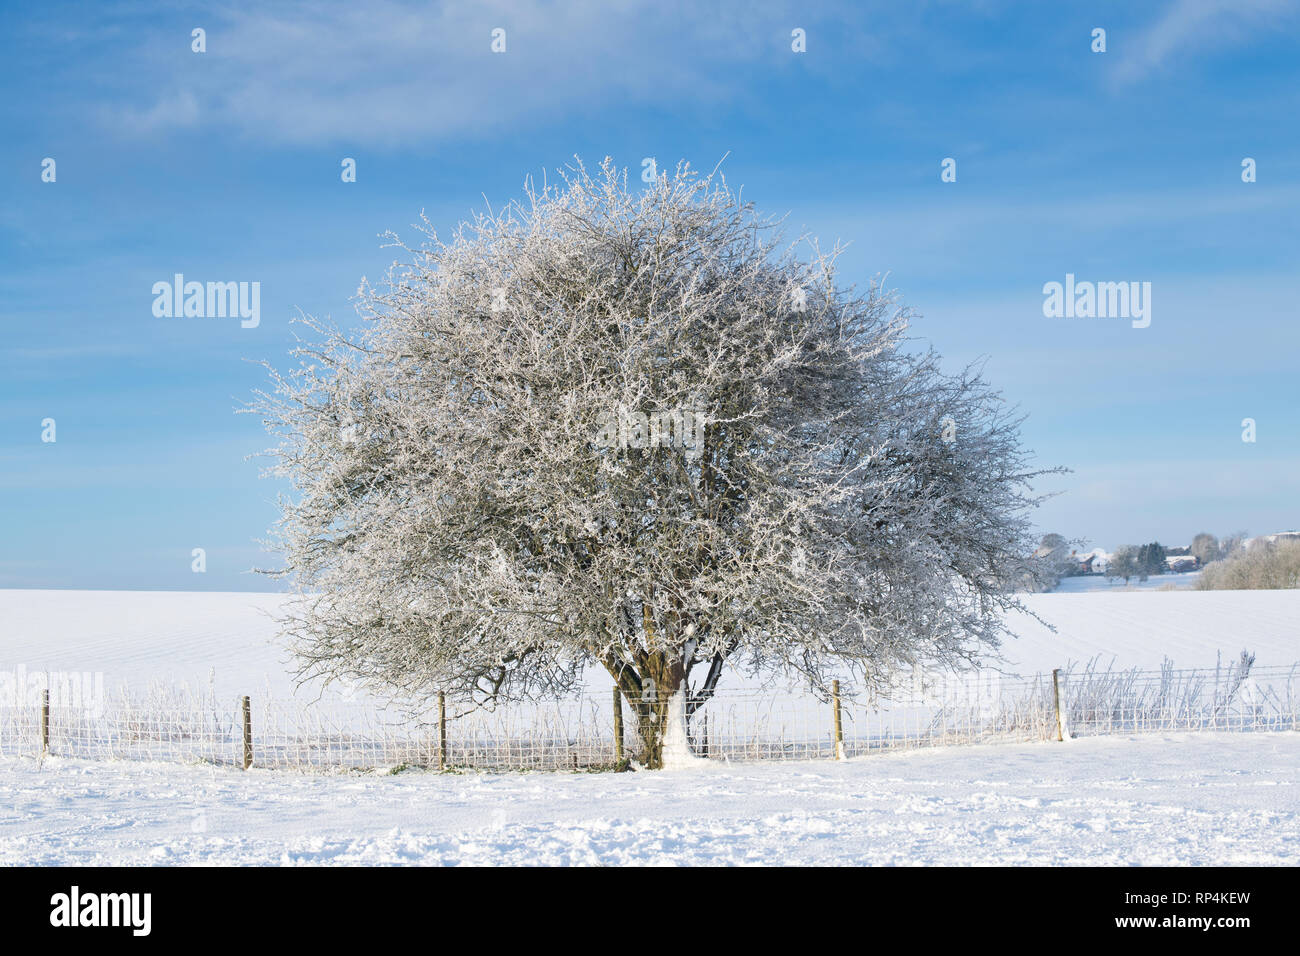 Winter hawthorn tree in the winter snow. Avebury, Wiltshire, England - Stock Image